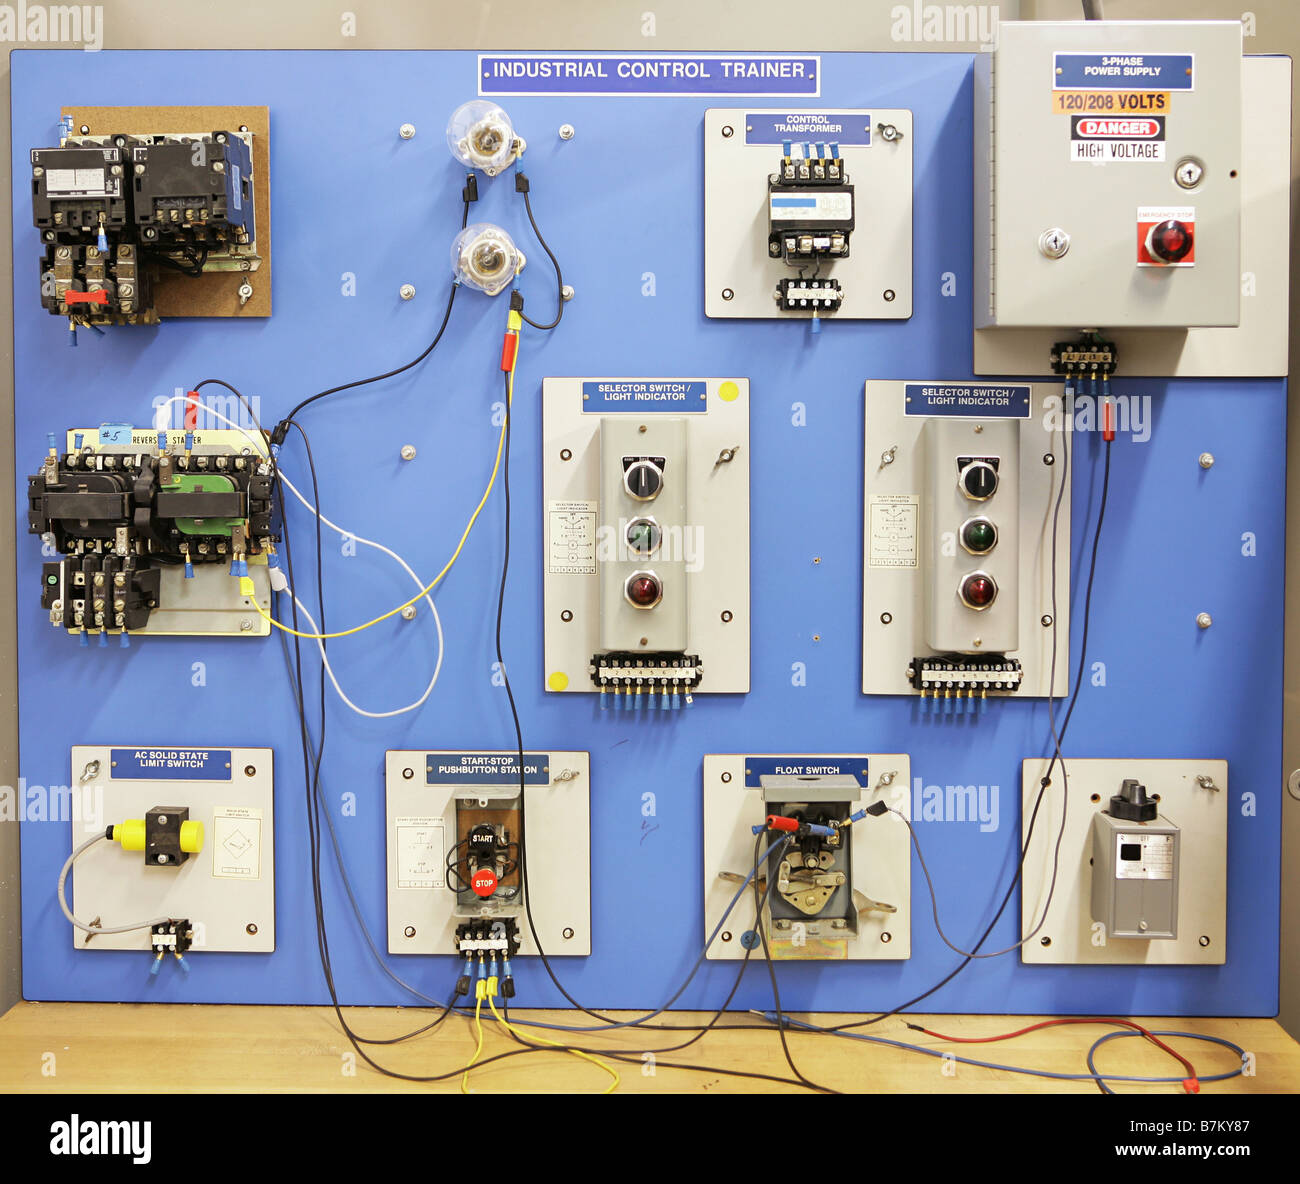 Transformer Wiring Board Trainer Trusted Diagram Guide An Industrial Motor Control Training Panel Used In Adult And Stock Rh Alamy Com